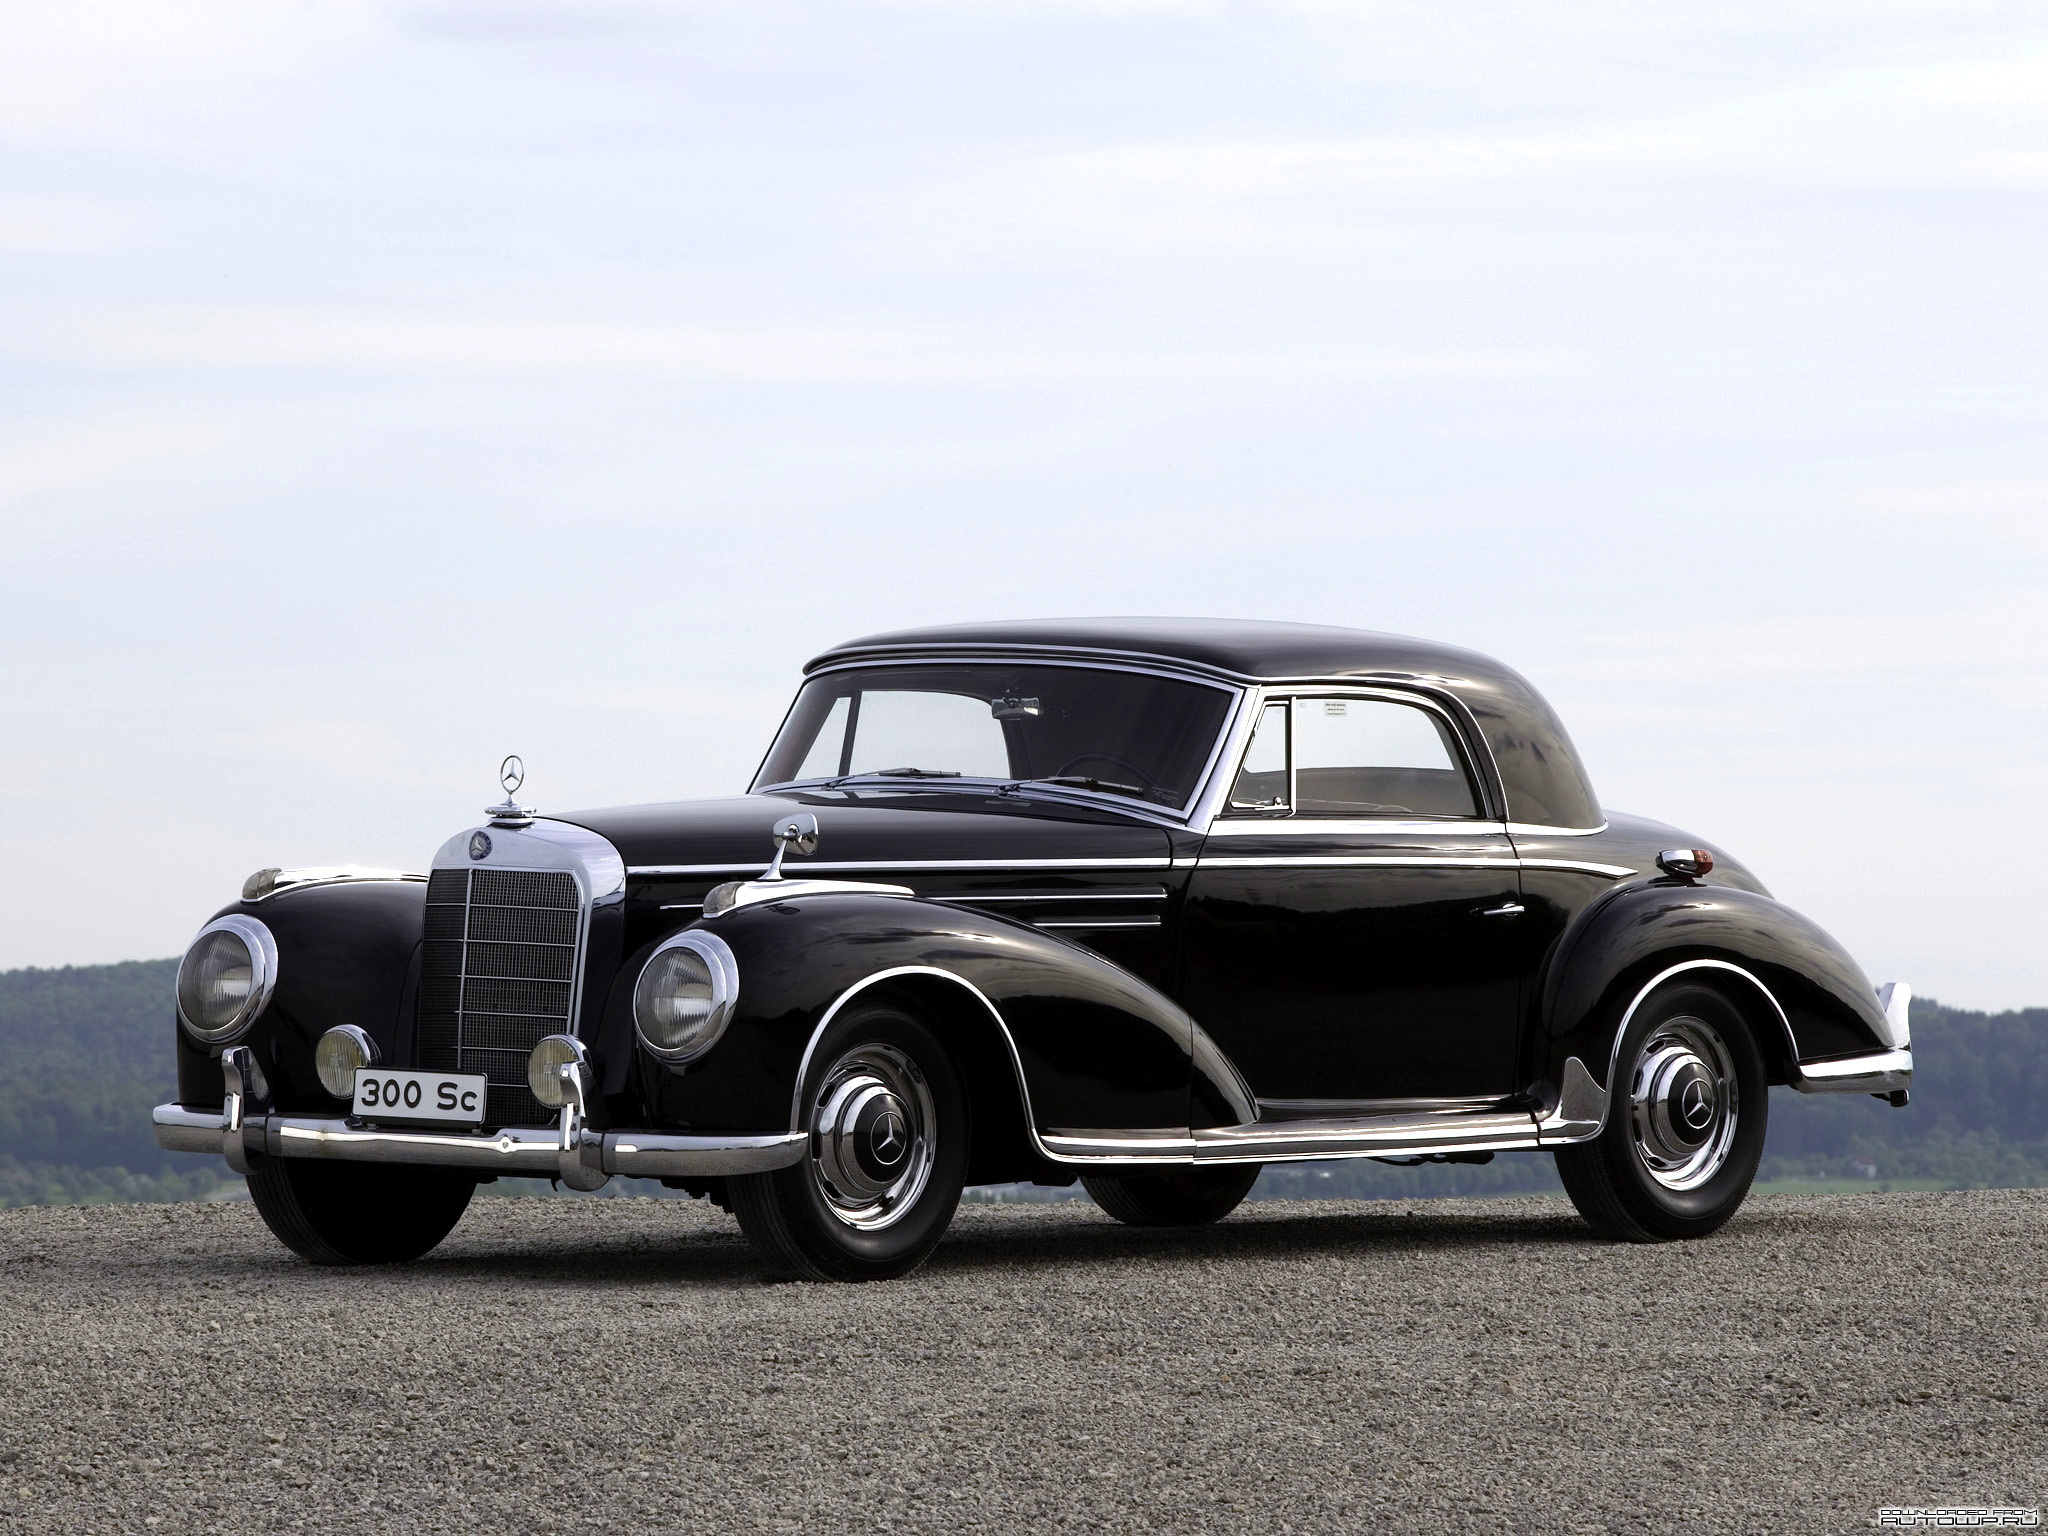 cars classic cars Mercedes-Benz HD Wallpaper